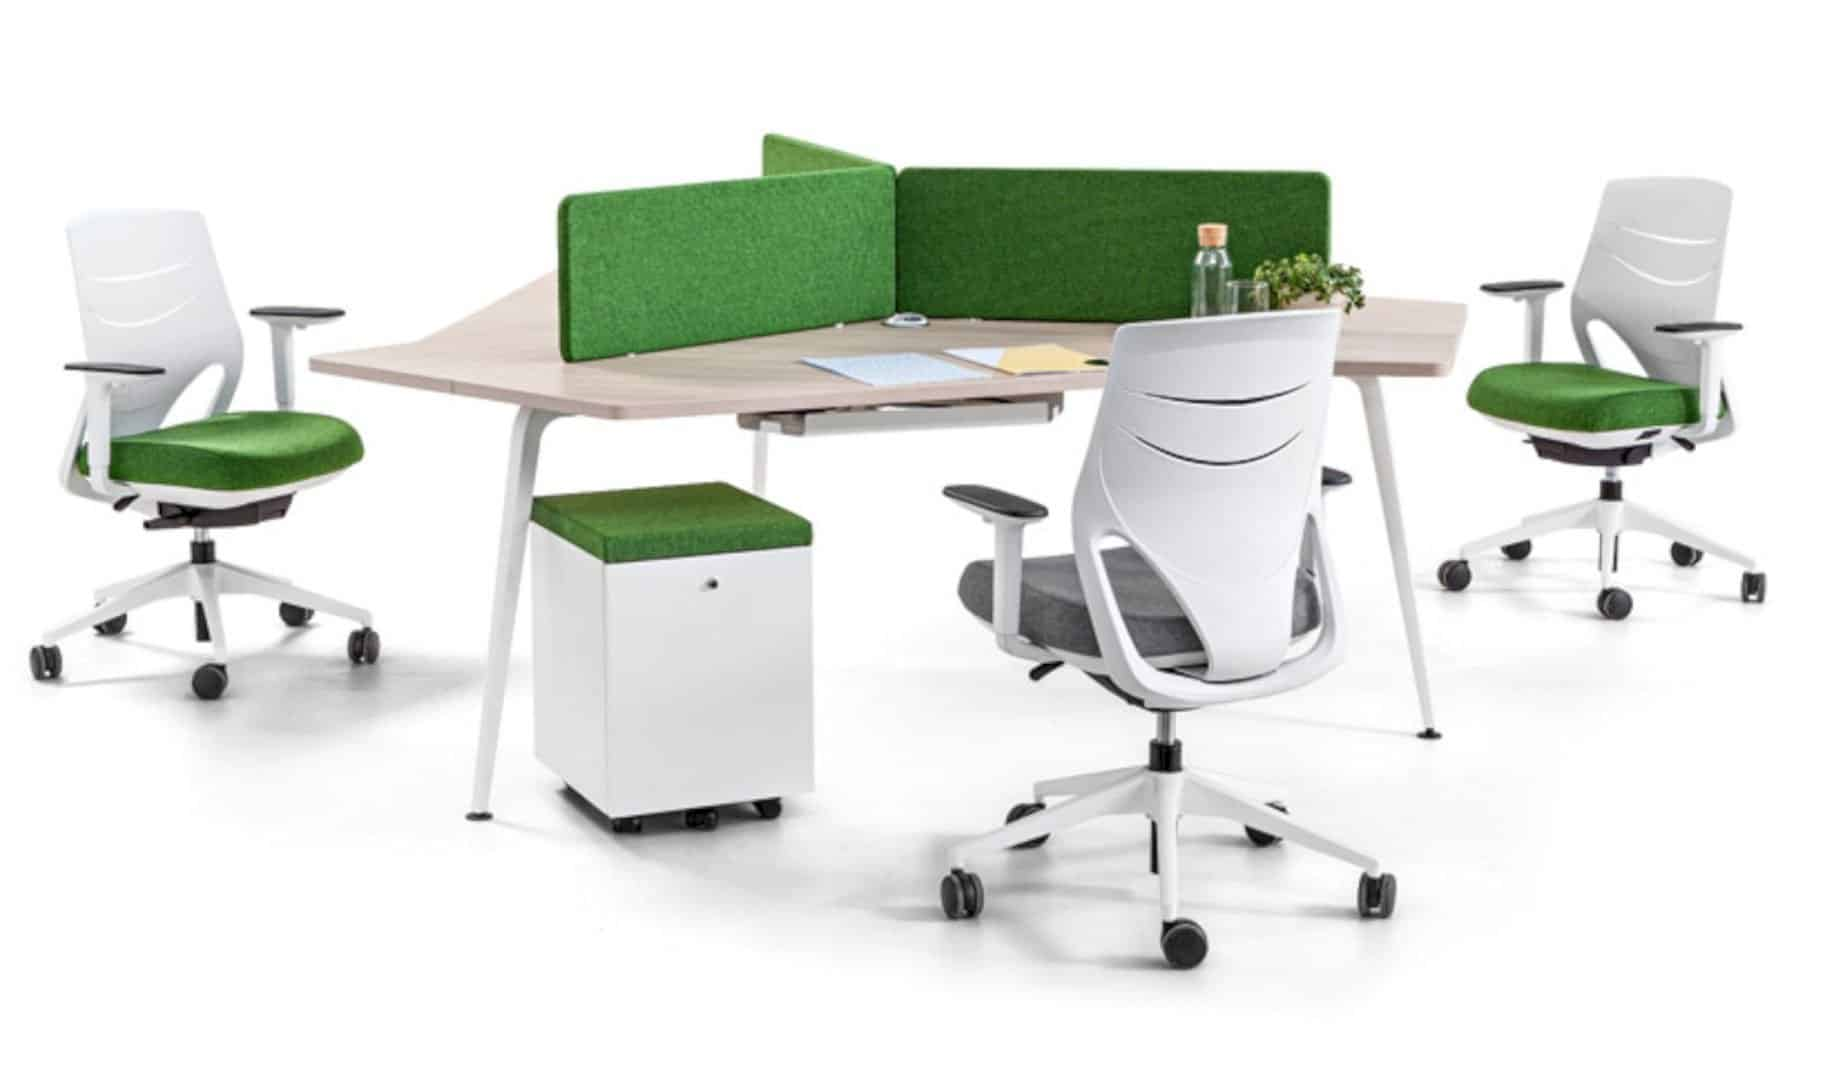 Actius Twist Offers A Fresh And Flexible Workspace 3